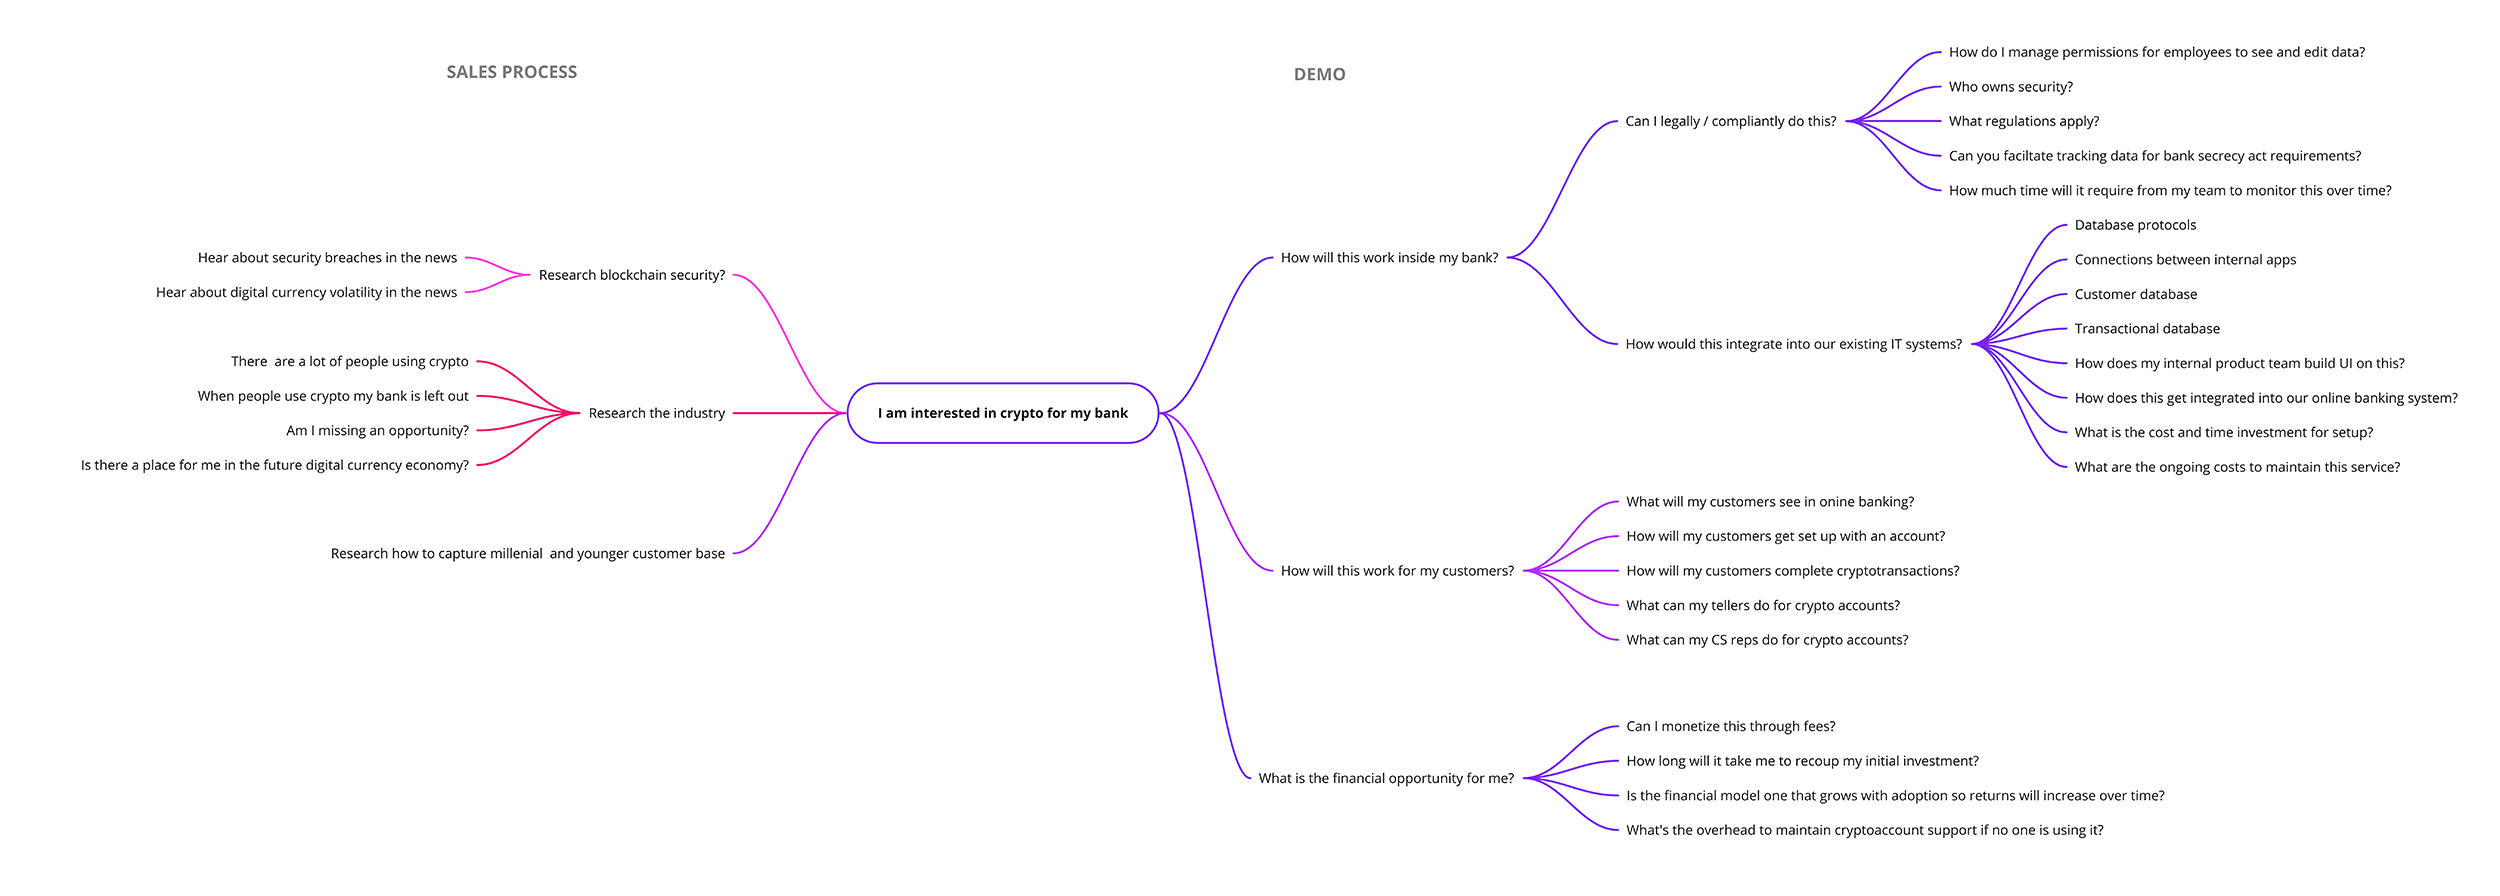 Mind map exploration for Modular Banking's bank admin tool and acquiring partners